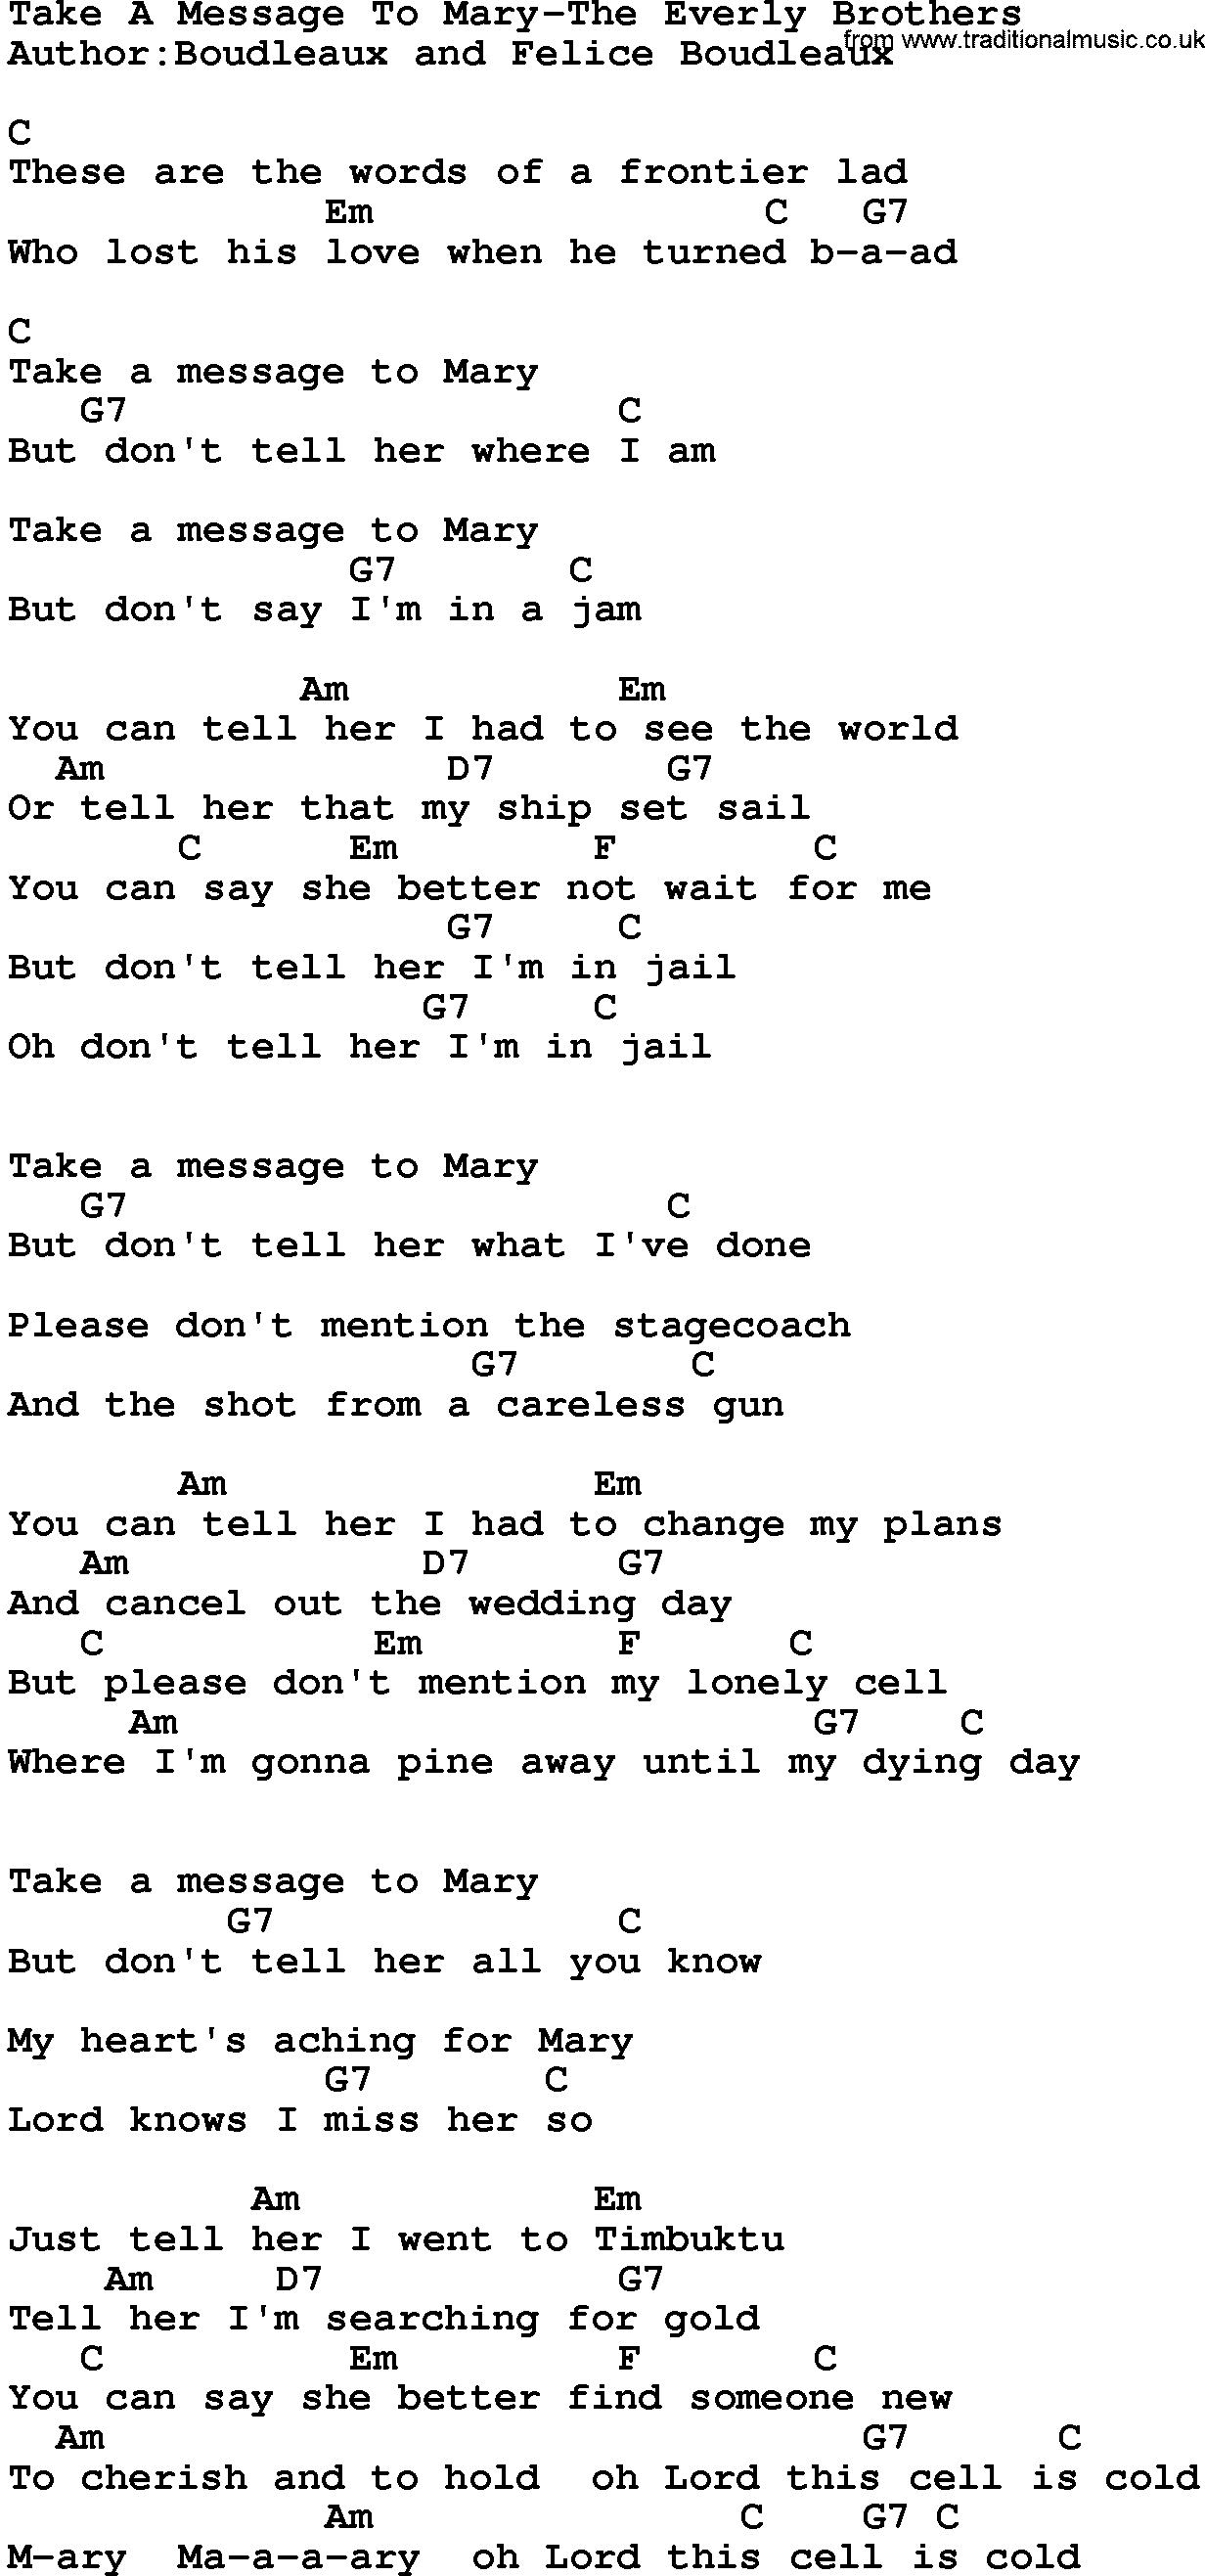 The Message From My Love Lyrics Take A college members